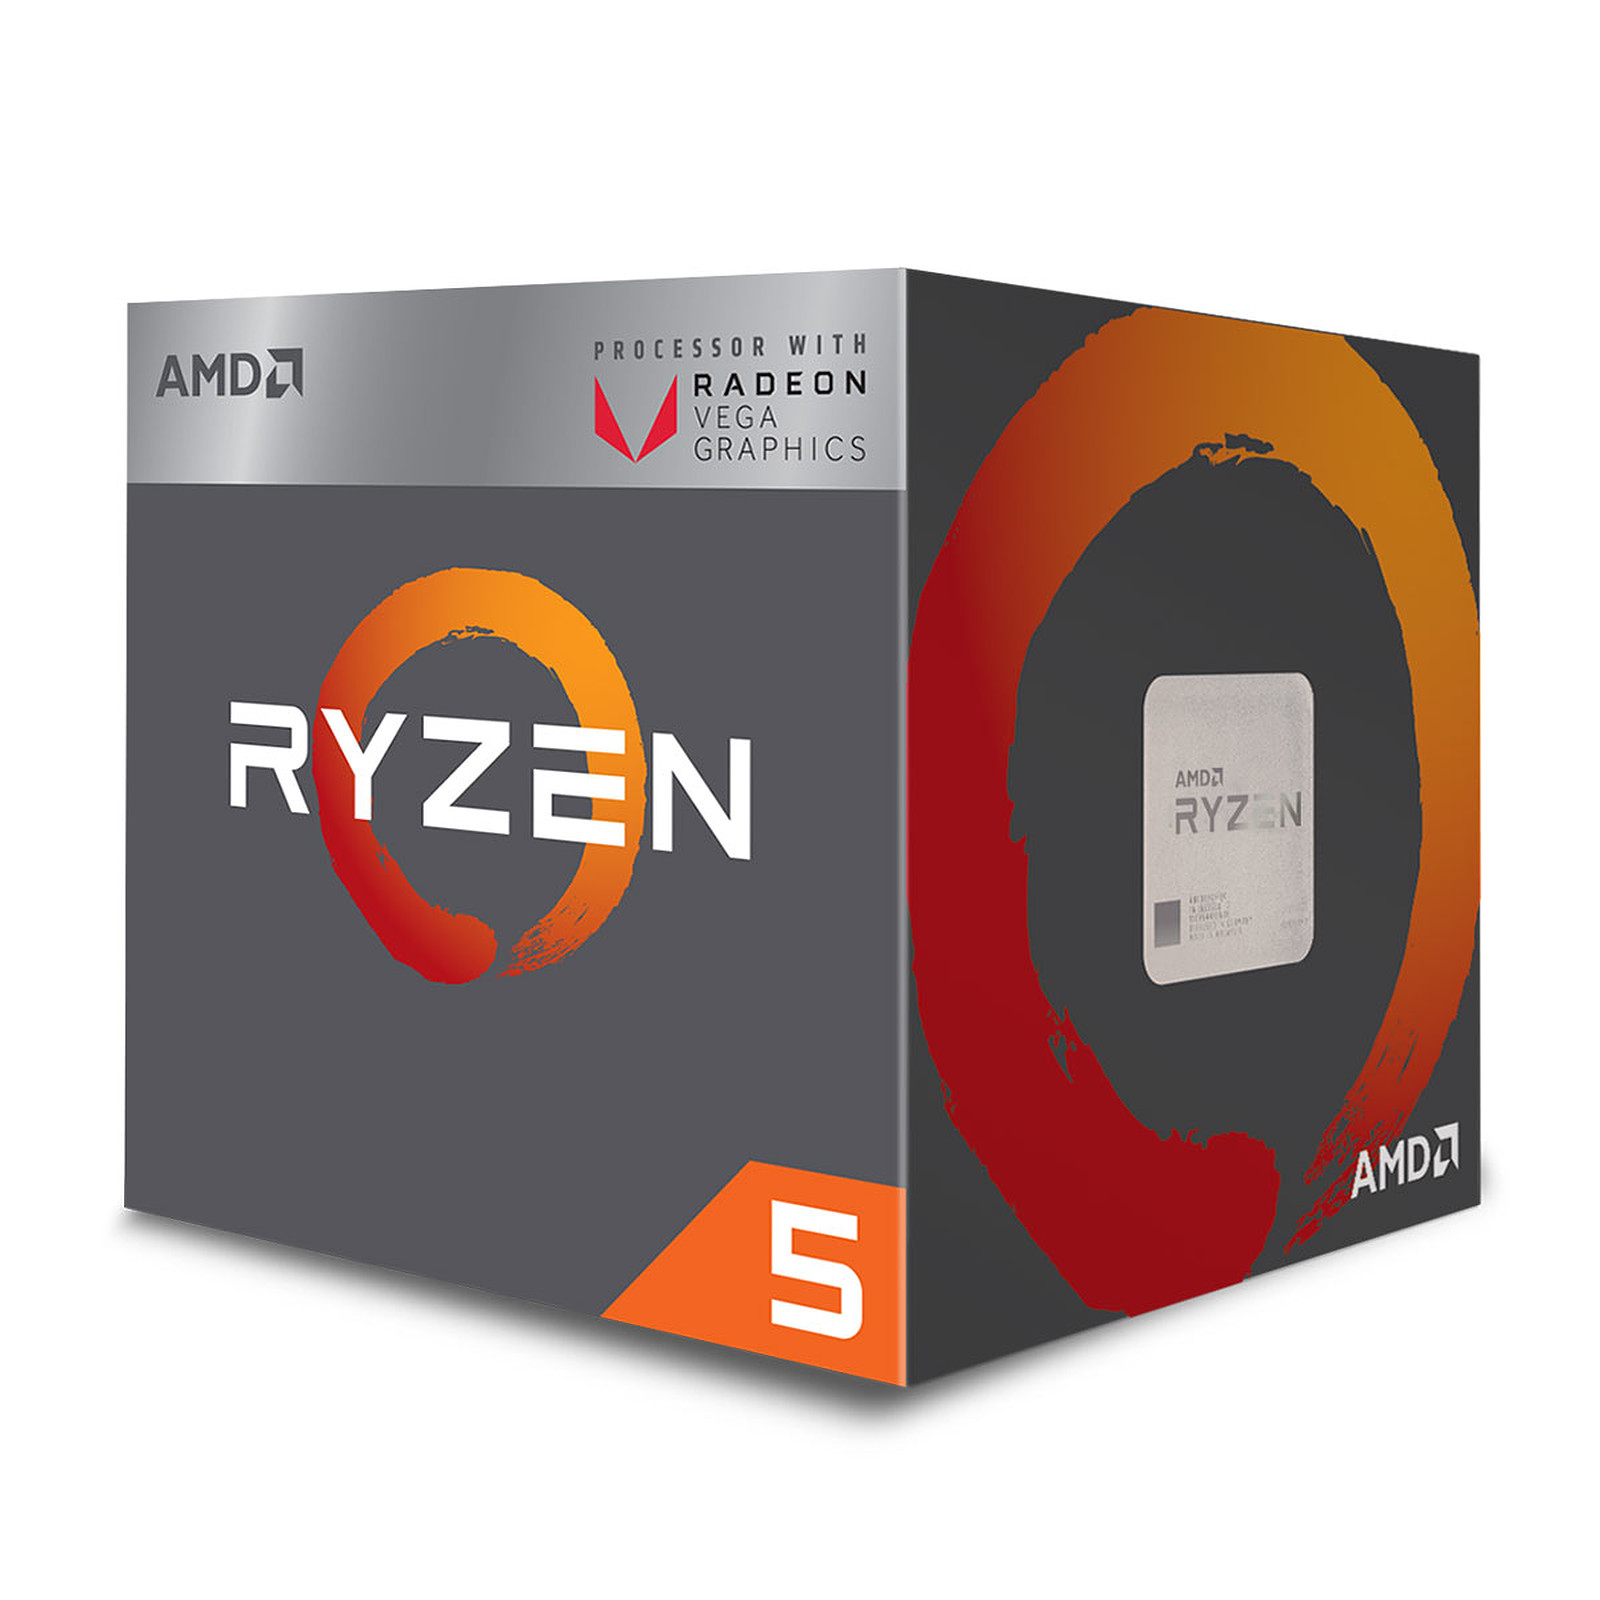 Processeur AMD 4 Core/8 Threads Socket AM4 Ryzen 5 2400G 6 Mo (Boîte), informatique ile de la Réunion, informatique-reunion.com